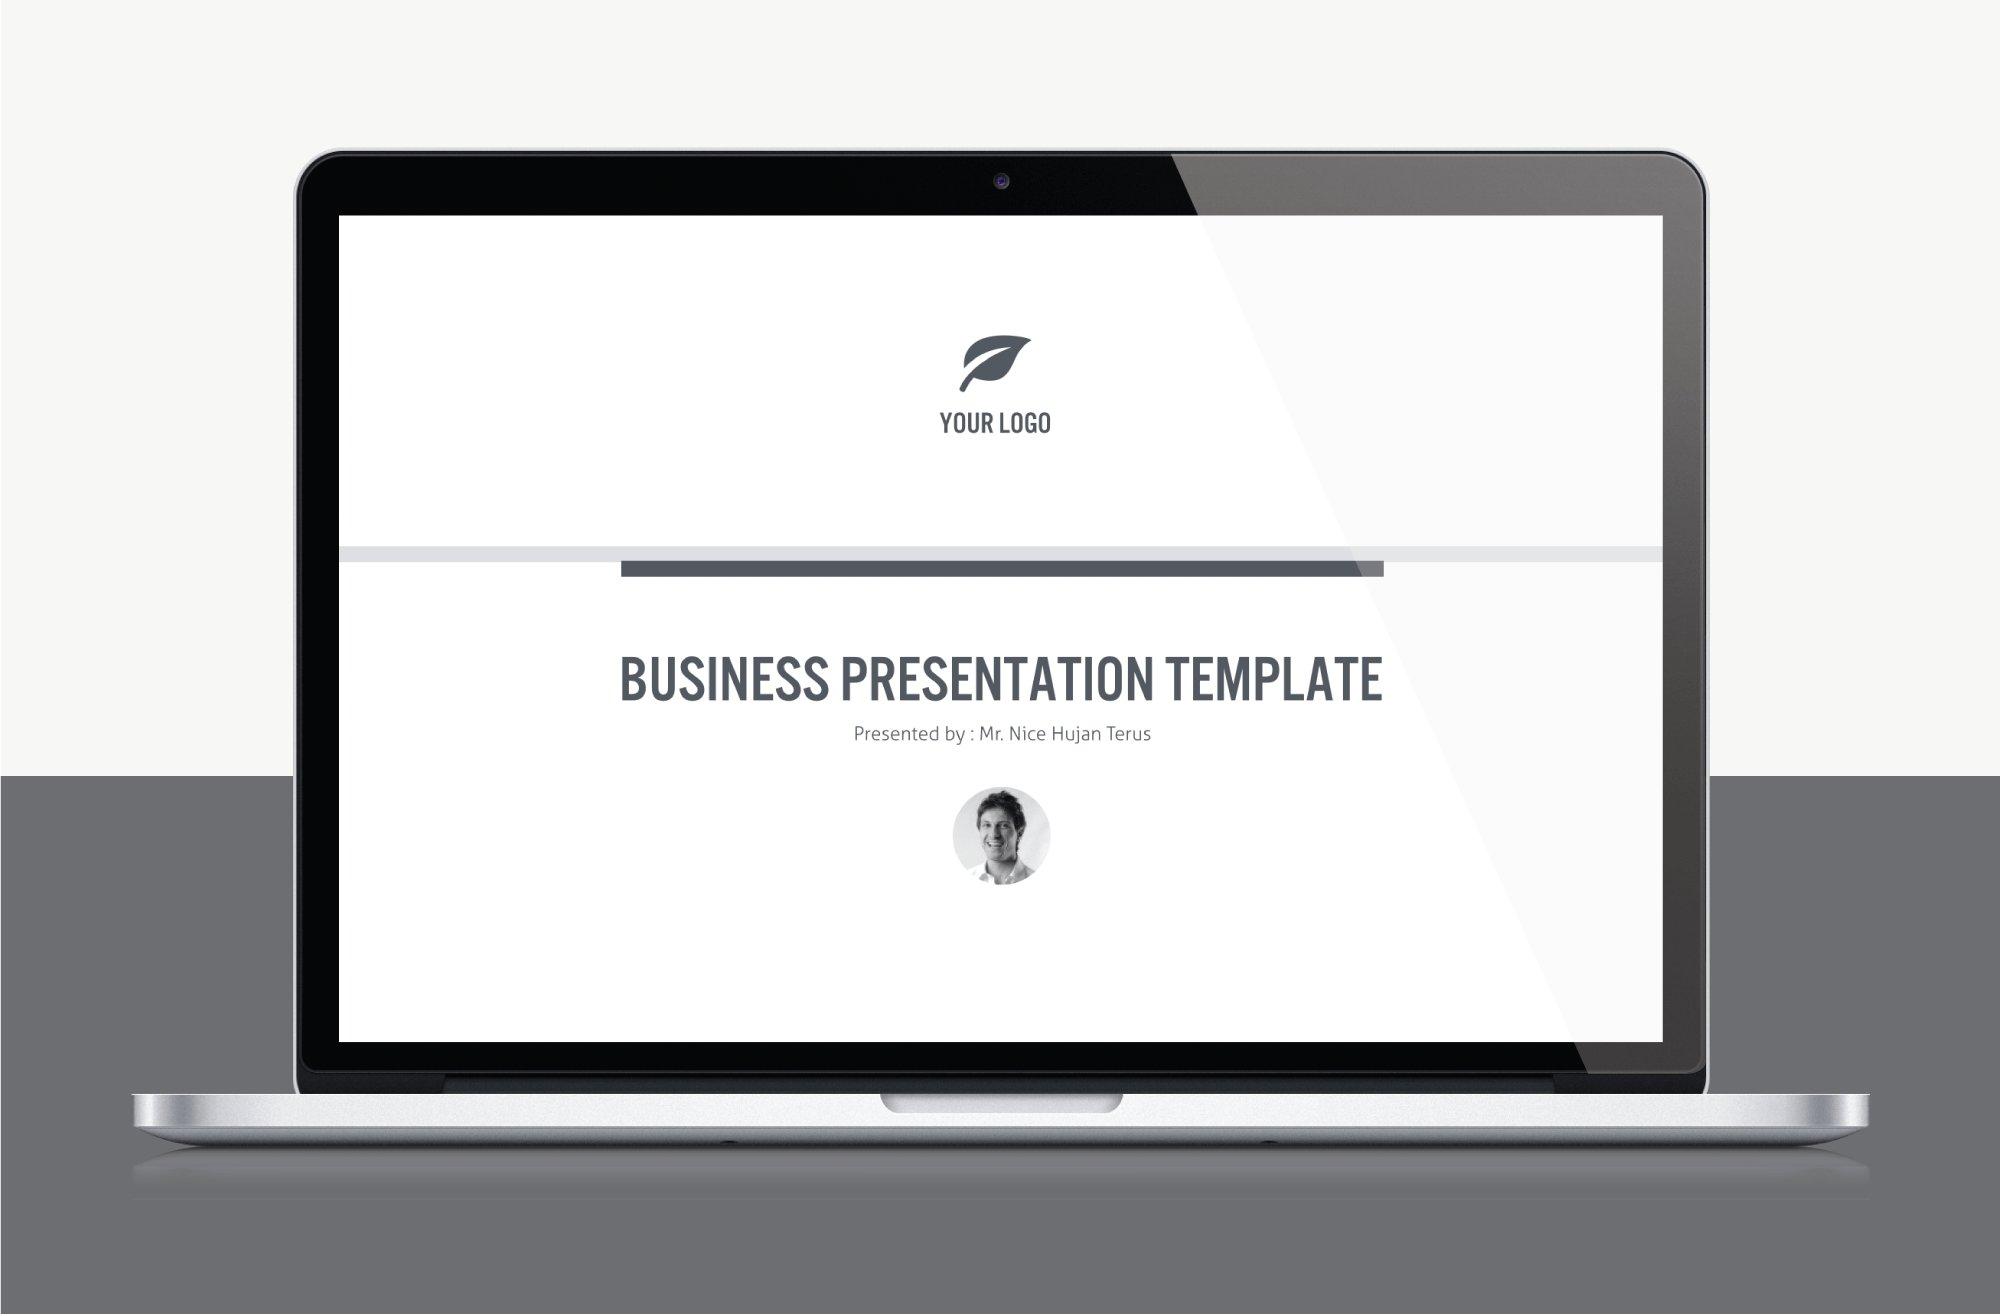 An excellent template for a business presentation.